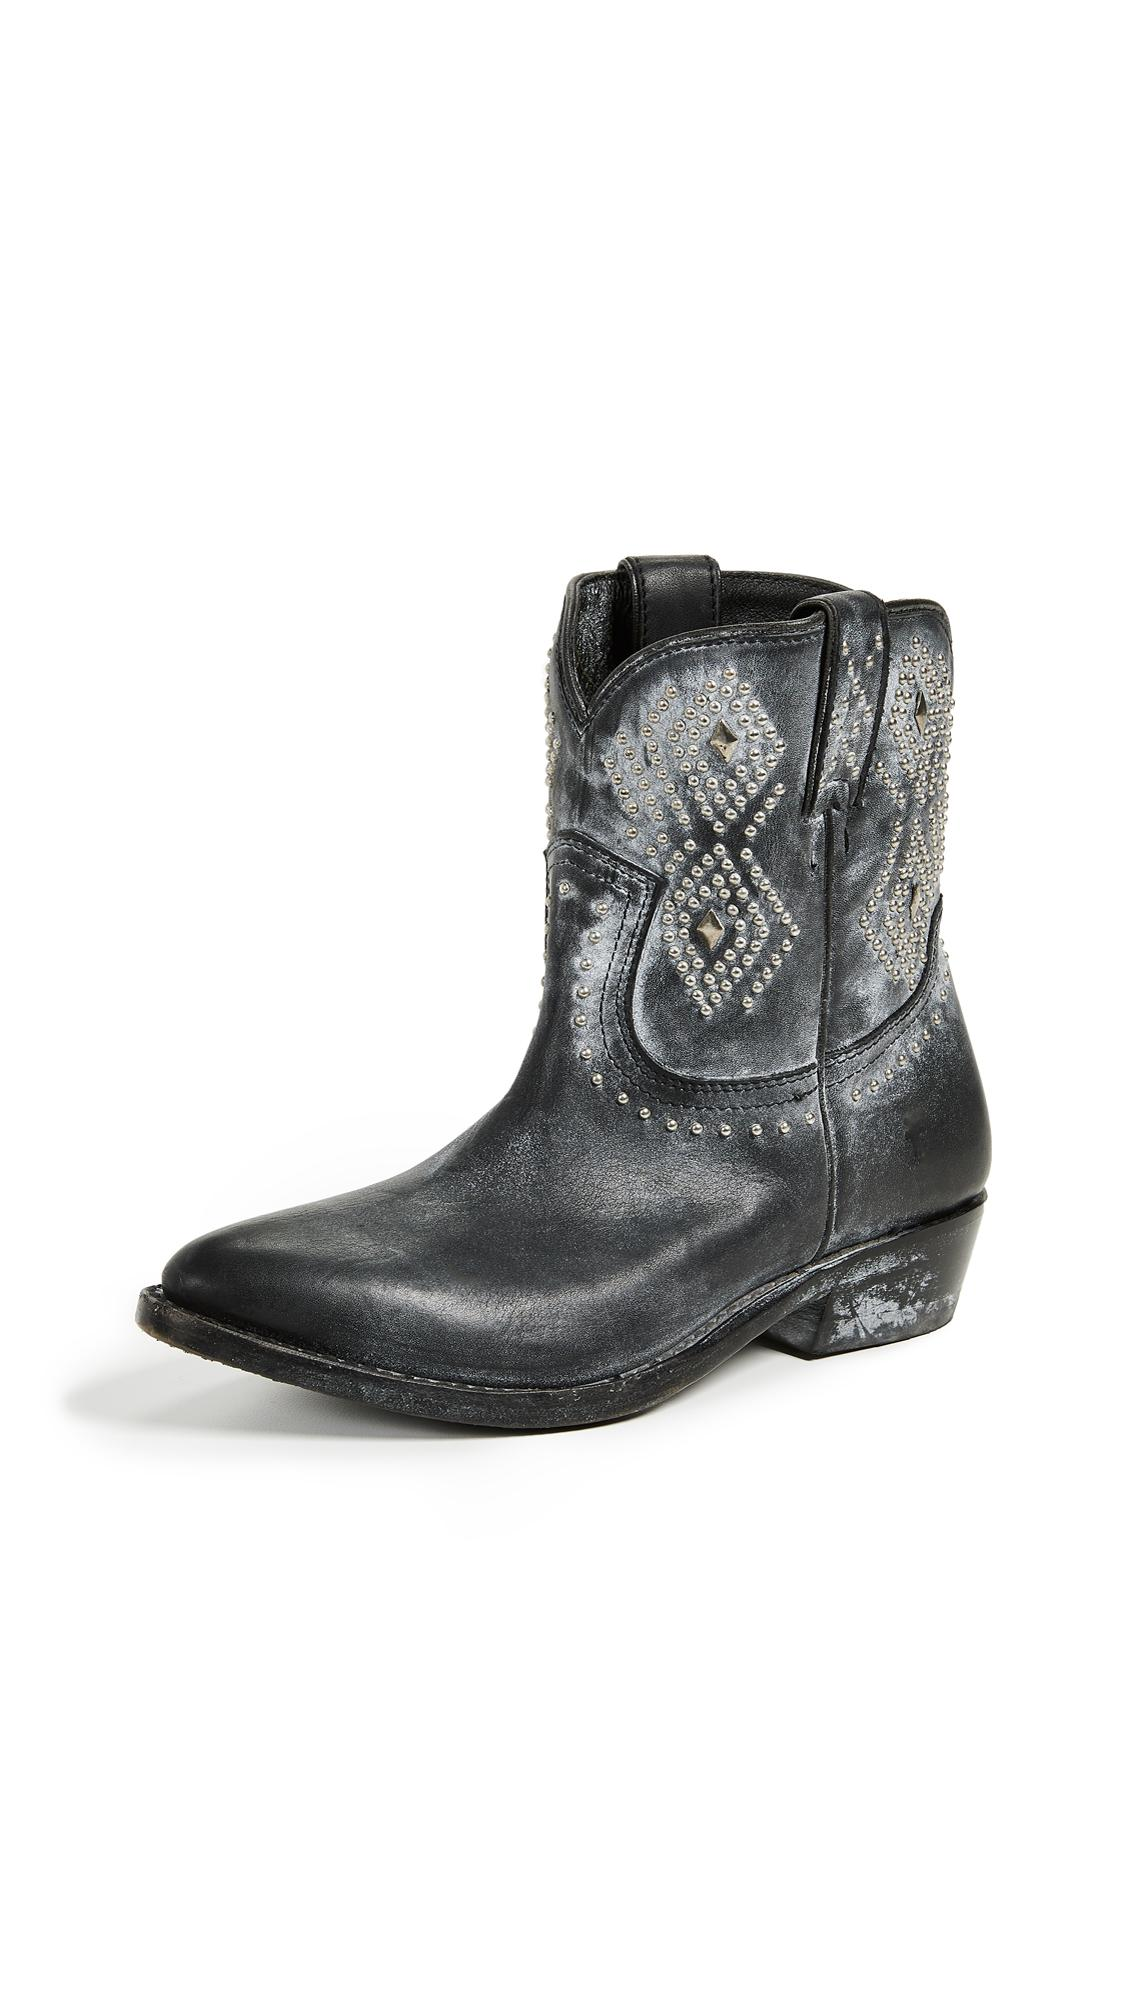 302d4ae1e7d Women's Billy Distressed Leather Low-Heel Western Boots in Black